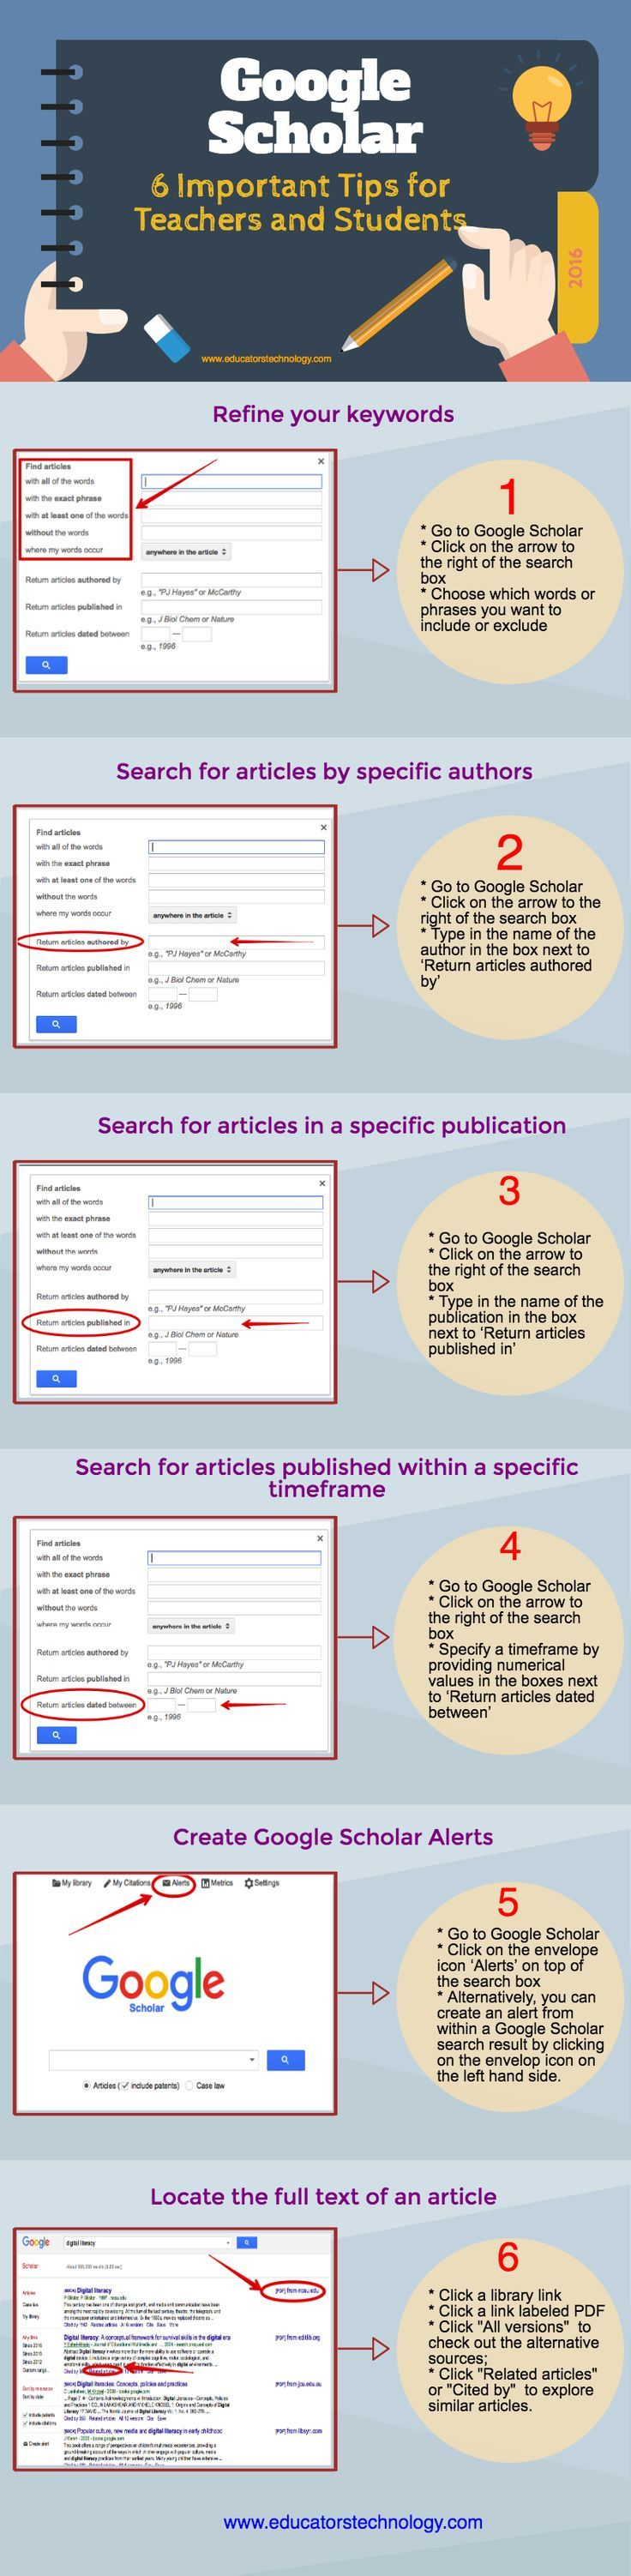 6 Important Google Scholar Tips for Teachers and Students (Poster ...